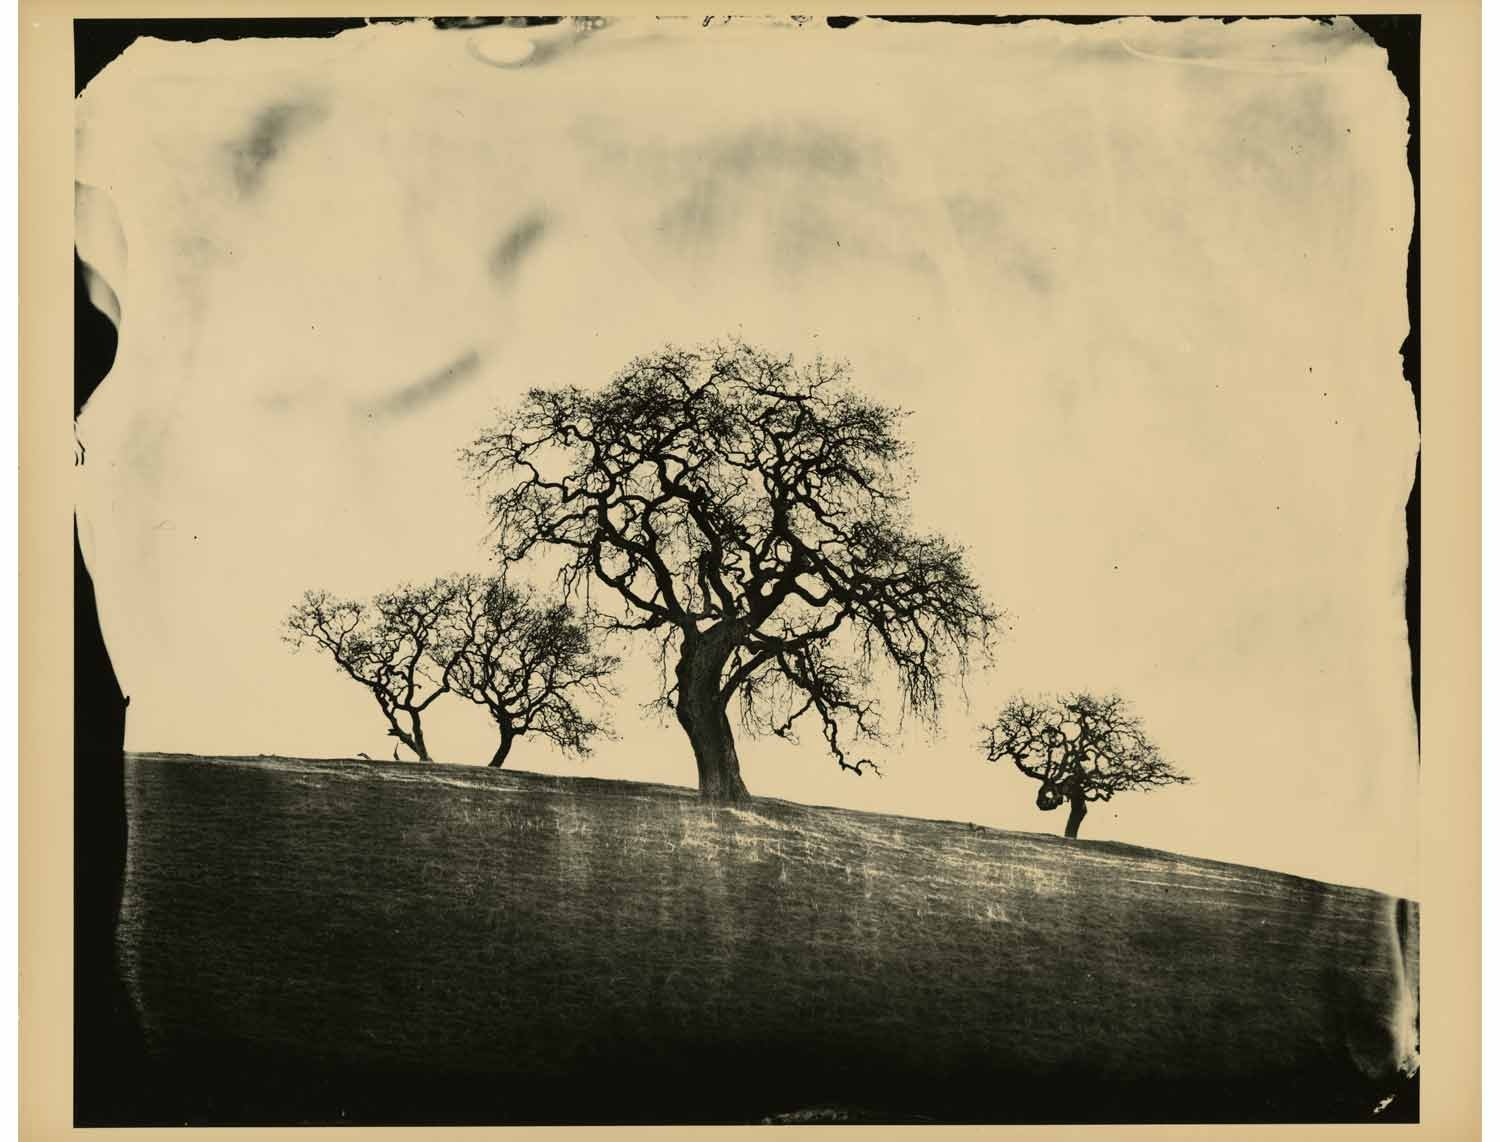 To the Wheatlight of June (A portfolio of 10 silver-gelatin prints) by